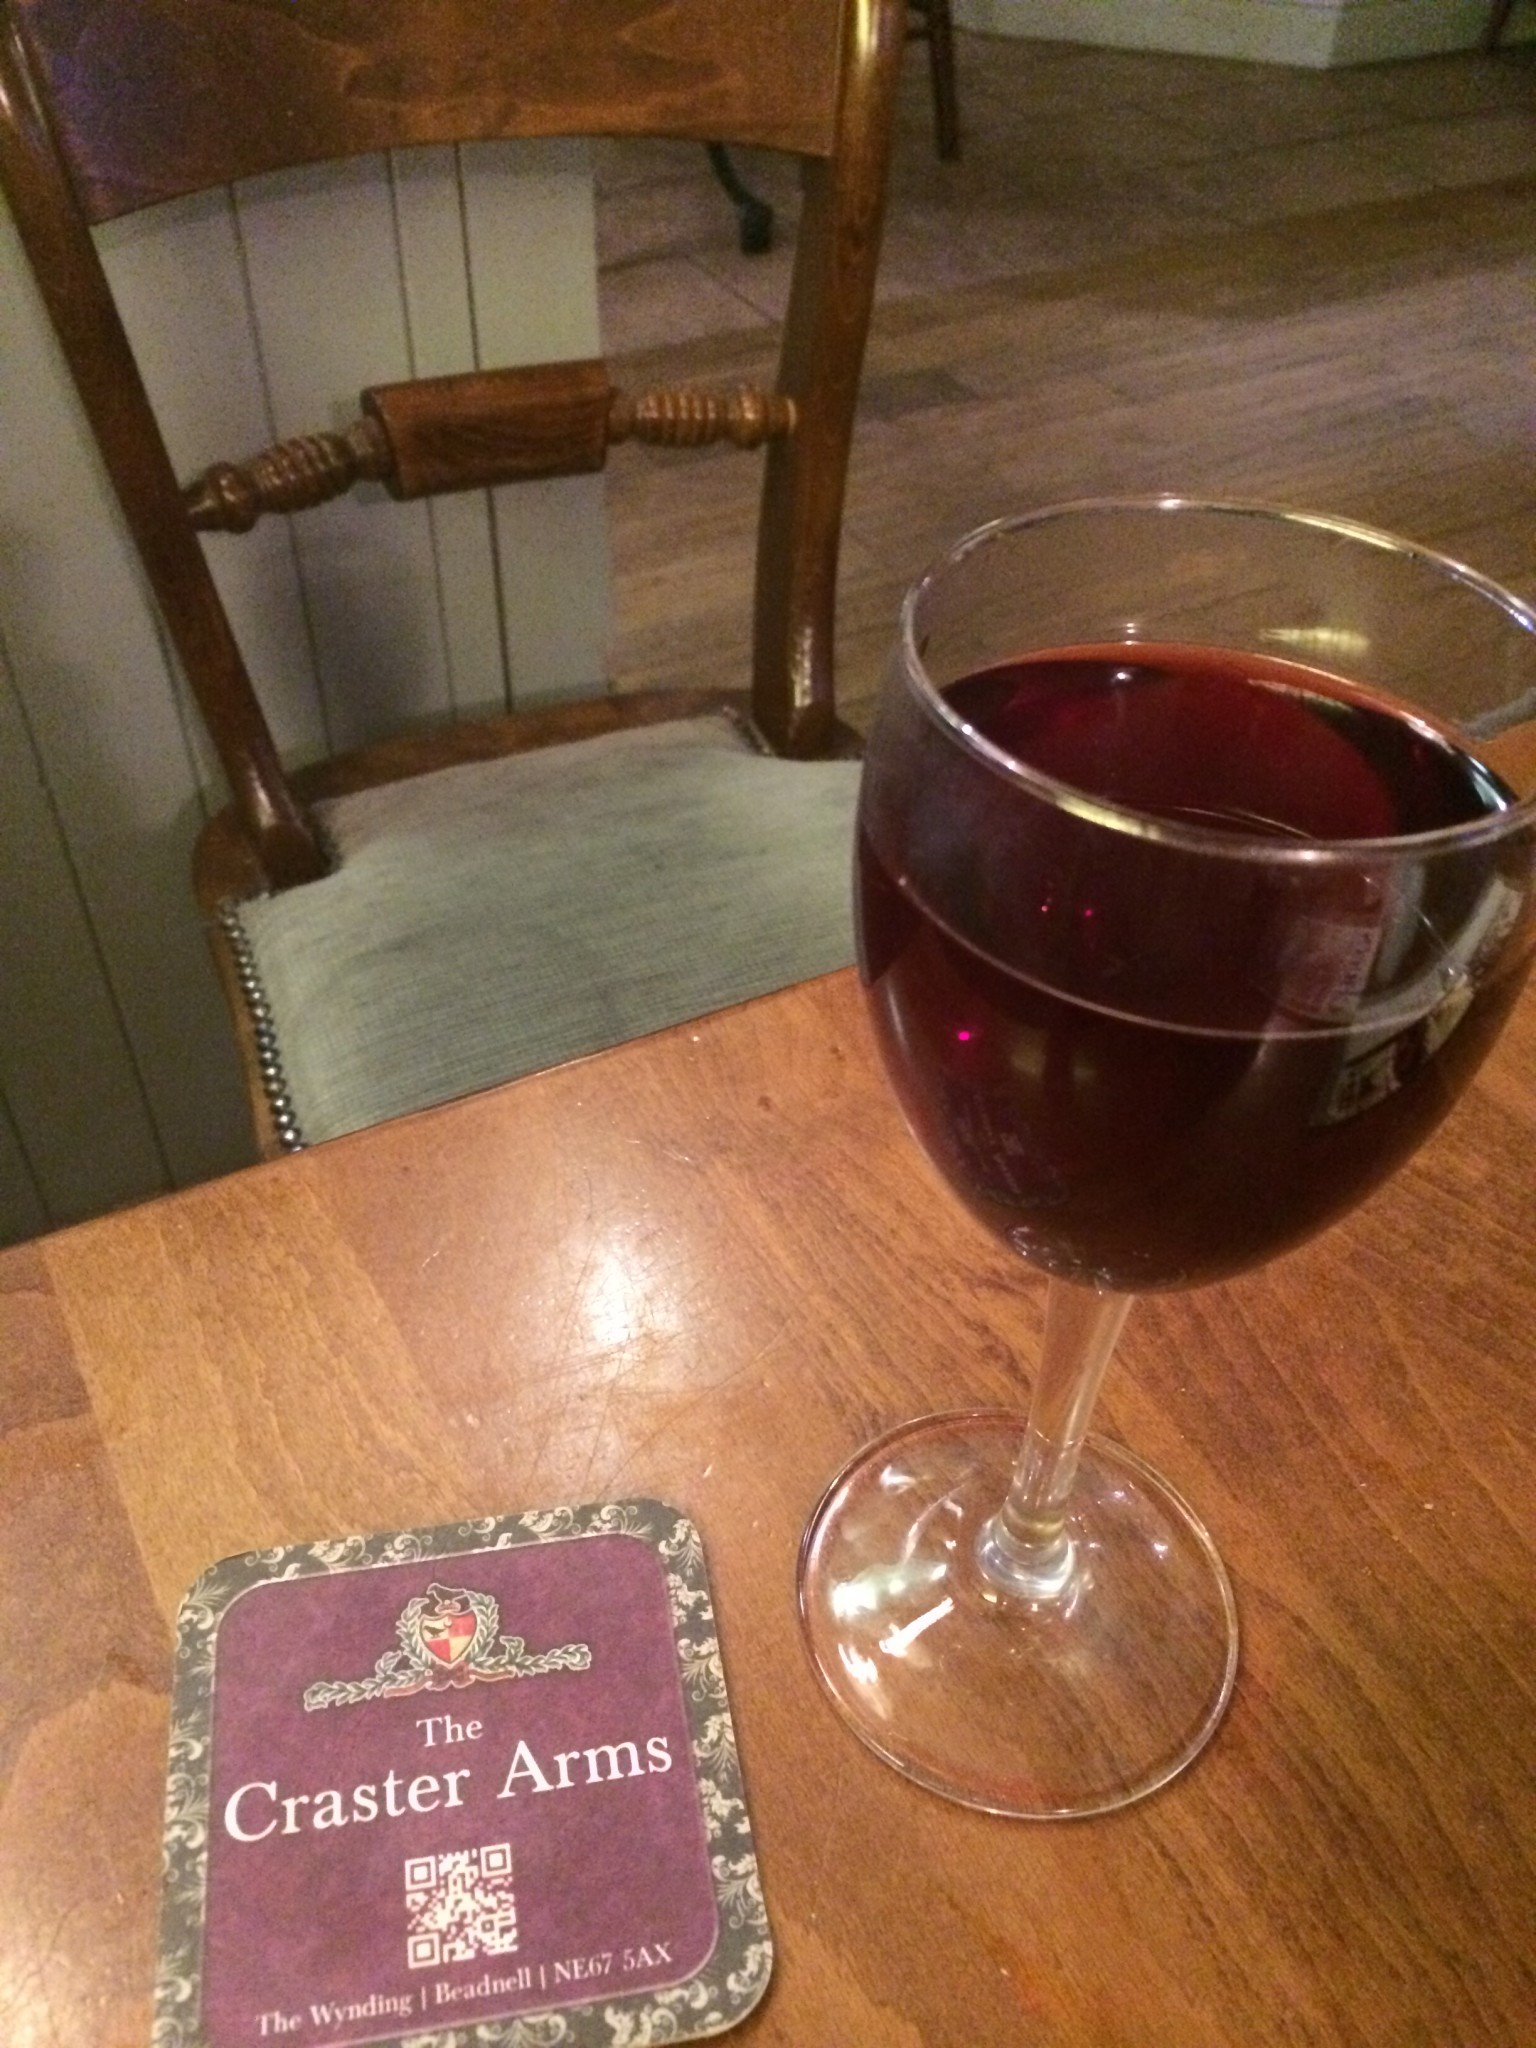 Expect good grub and drink at the Craster Arms, Beadnell